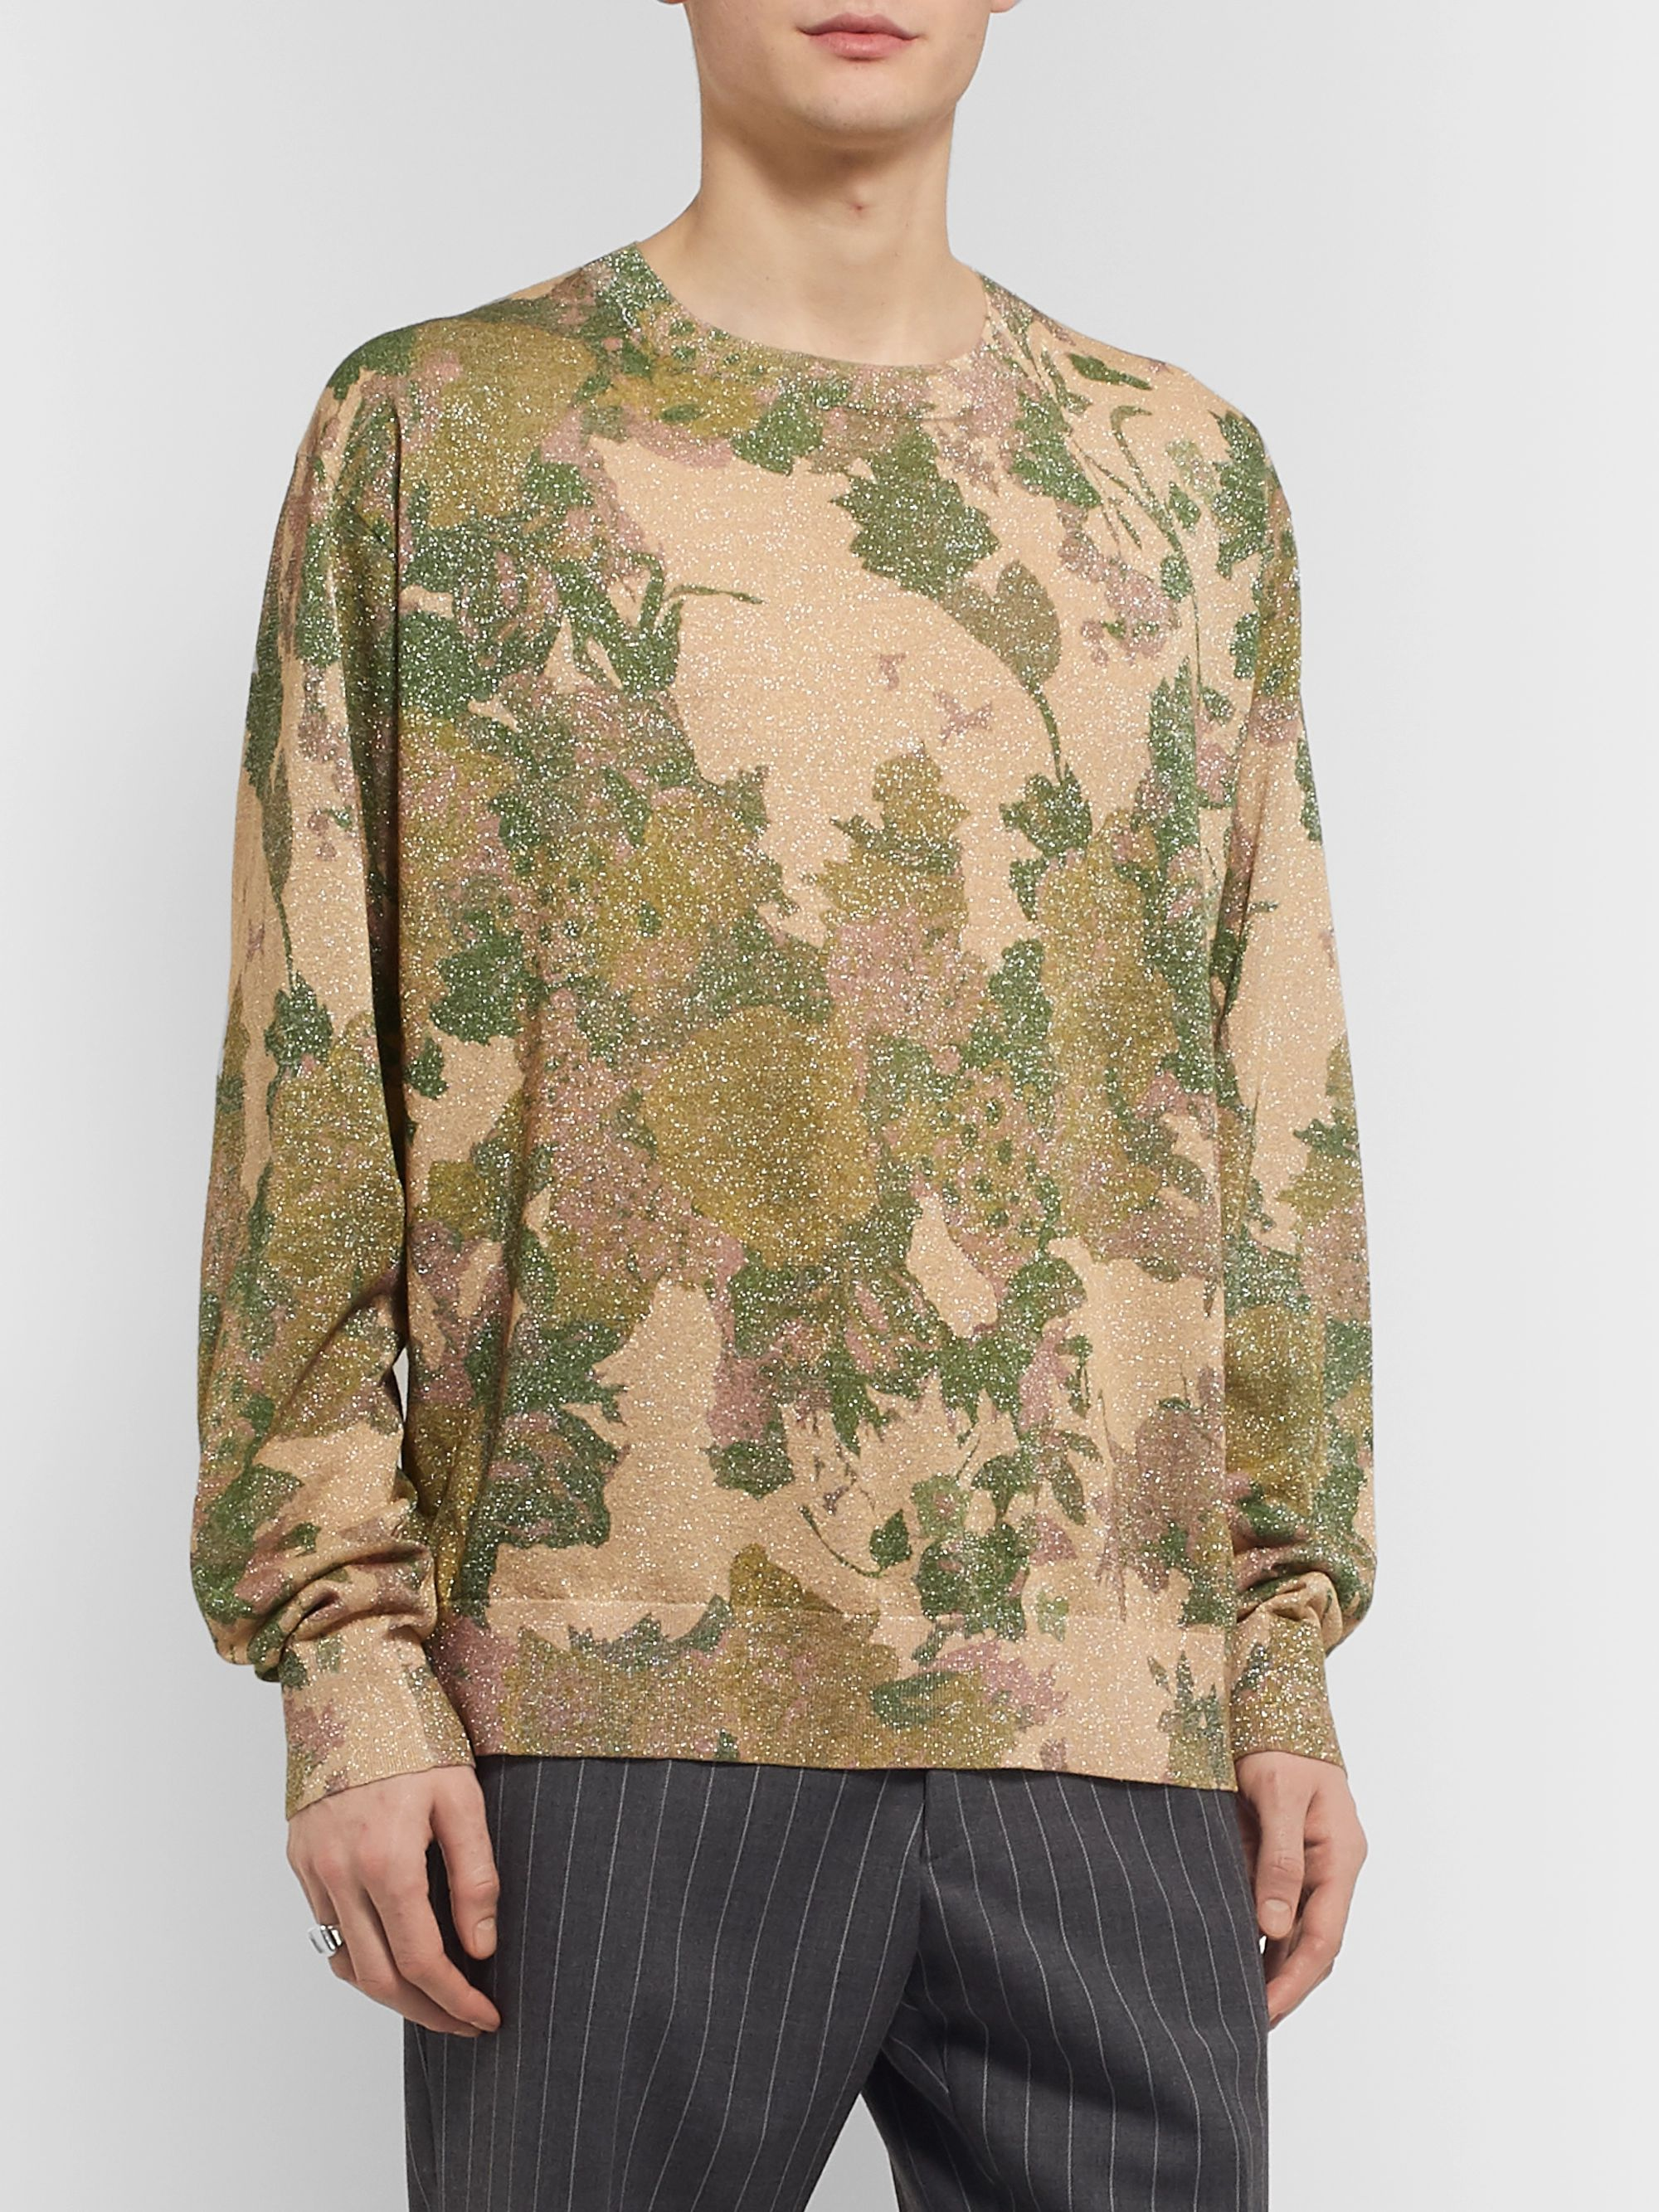 Dries Van Noten Metallic Floral-Print Knitted Sweater